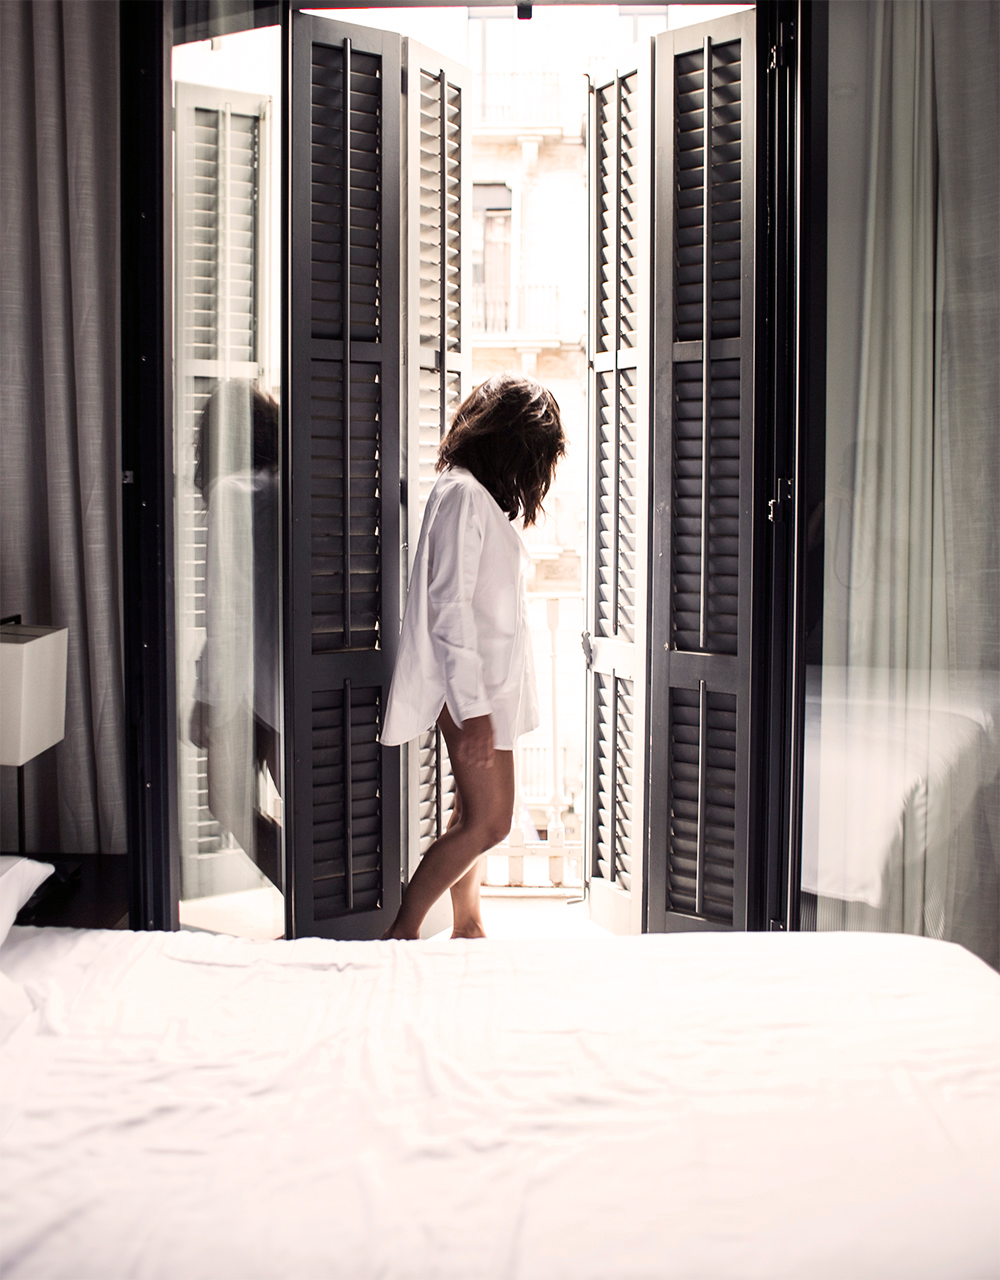 3_hotel-pulizer-barcelona-spain-sania-claus-demina-room-217-gina-tricot-shirt_2